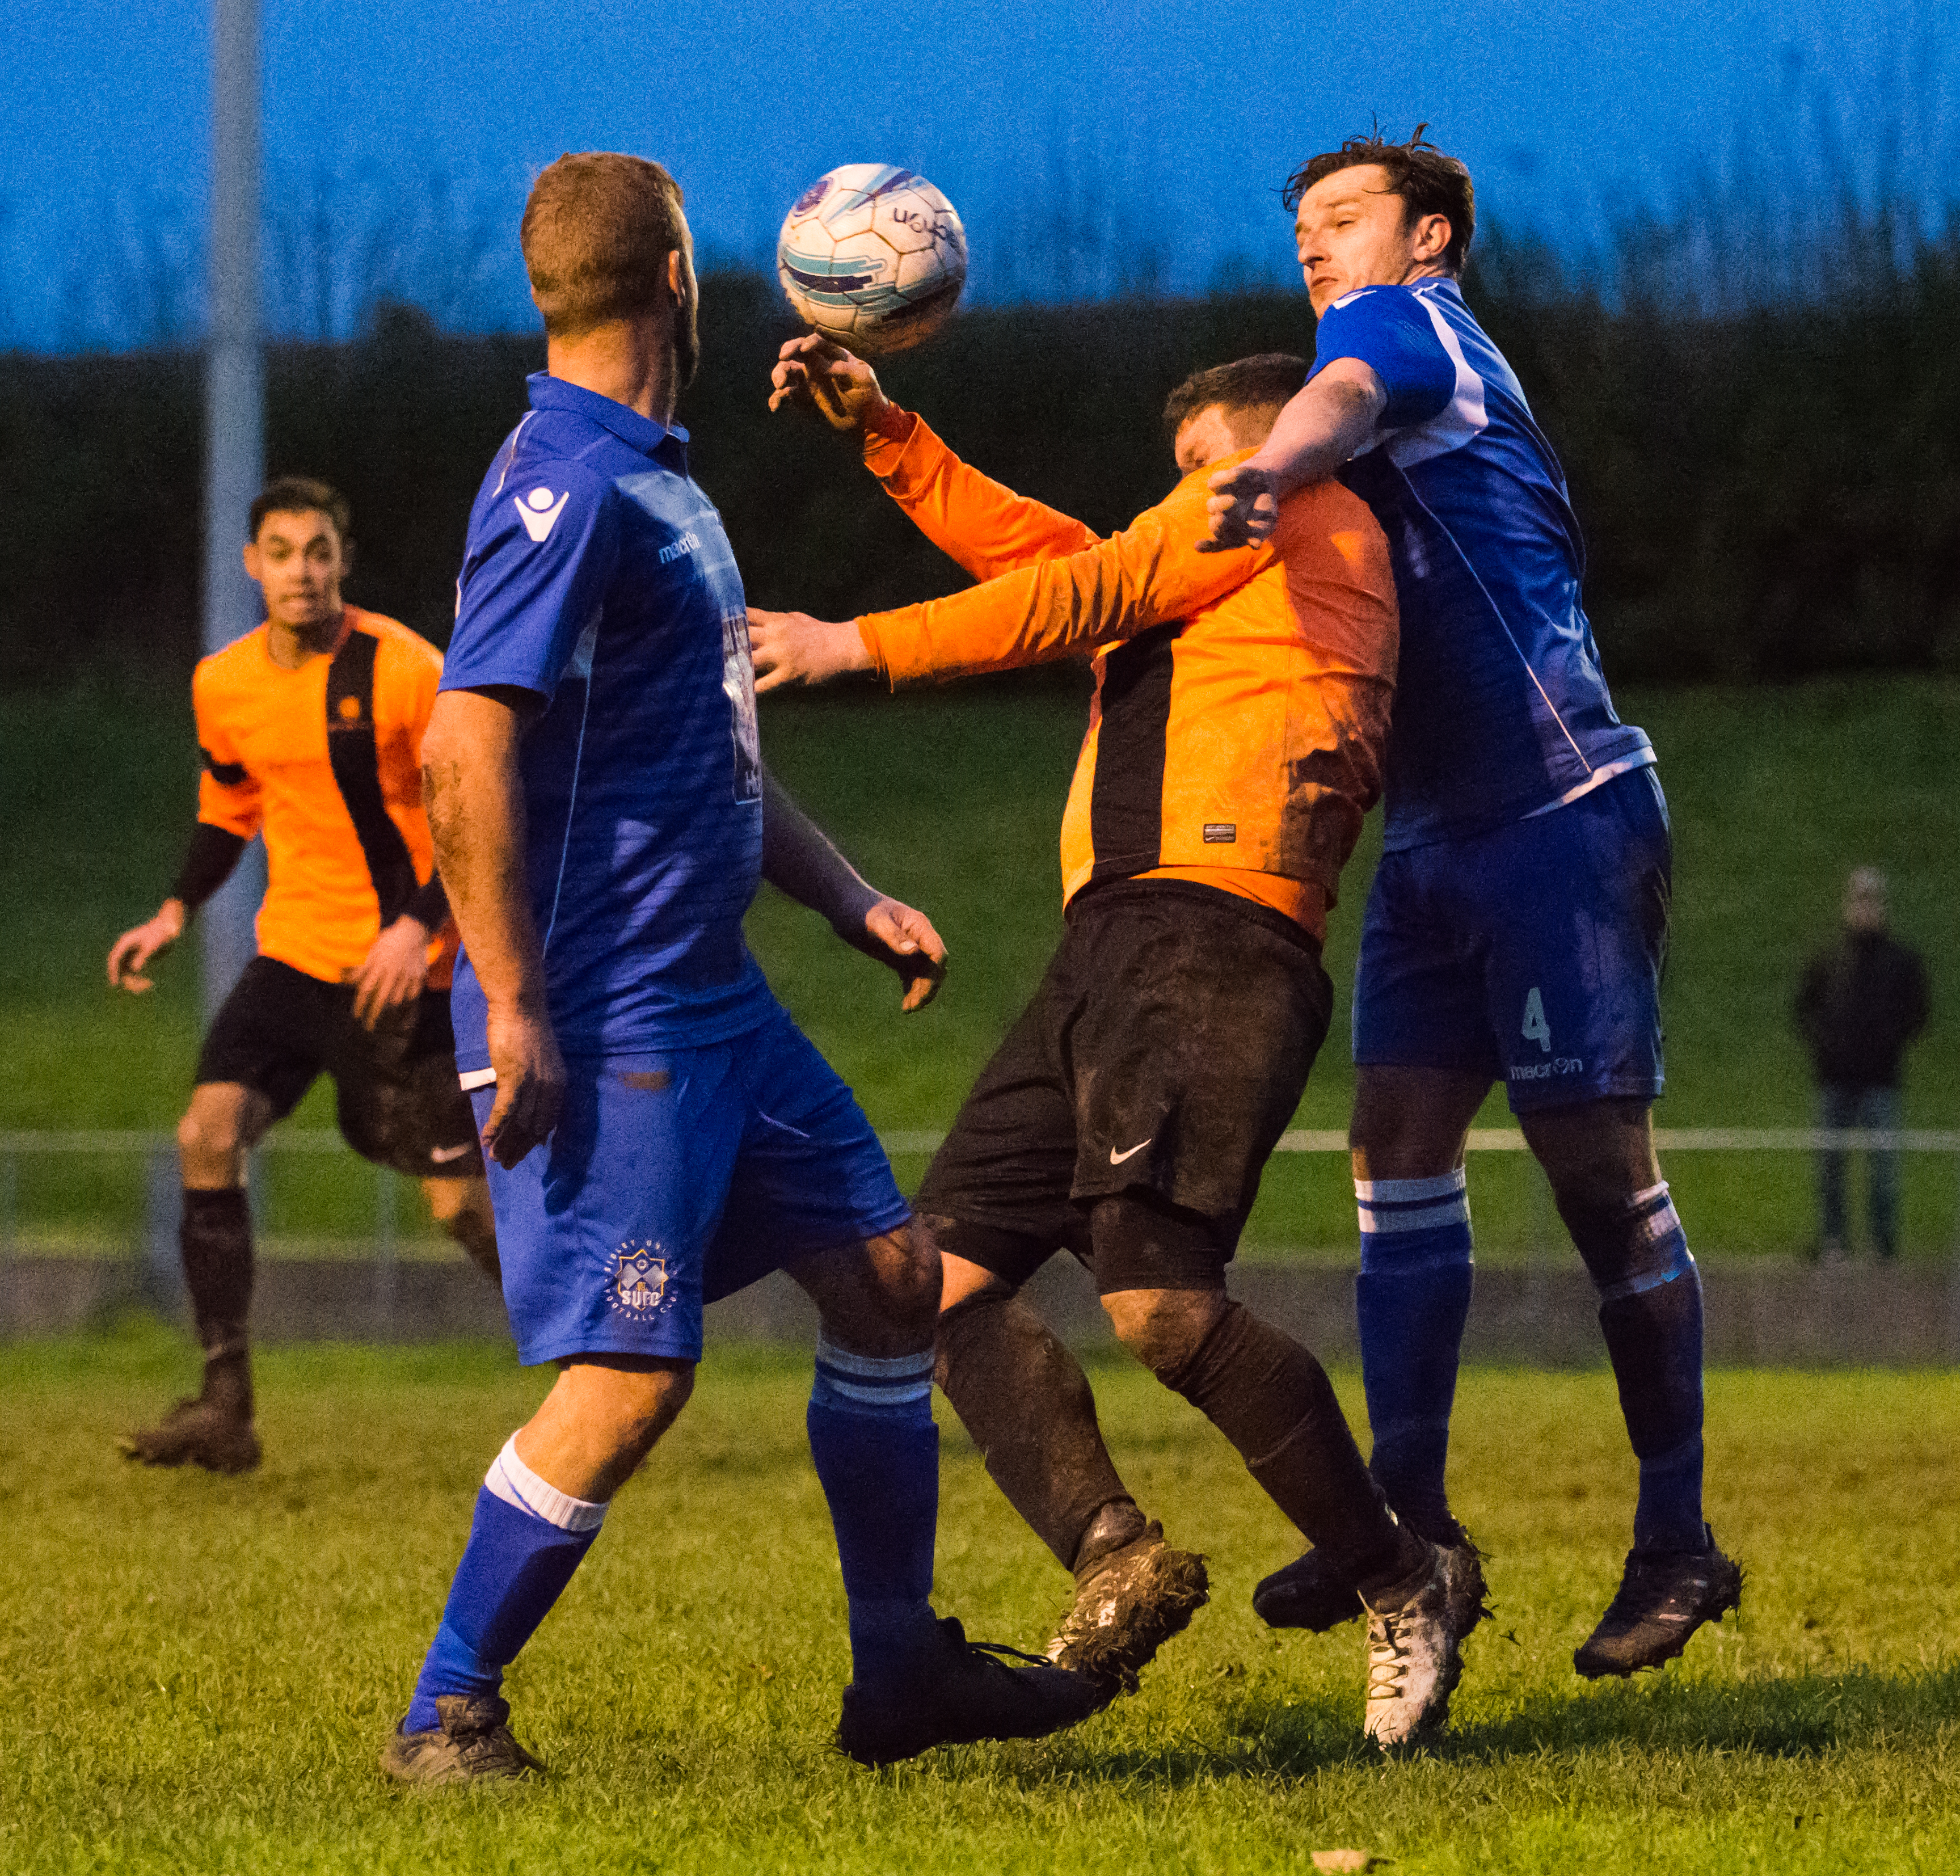 Mile Oak Res vs Sidley United 09.12.17 52